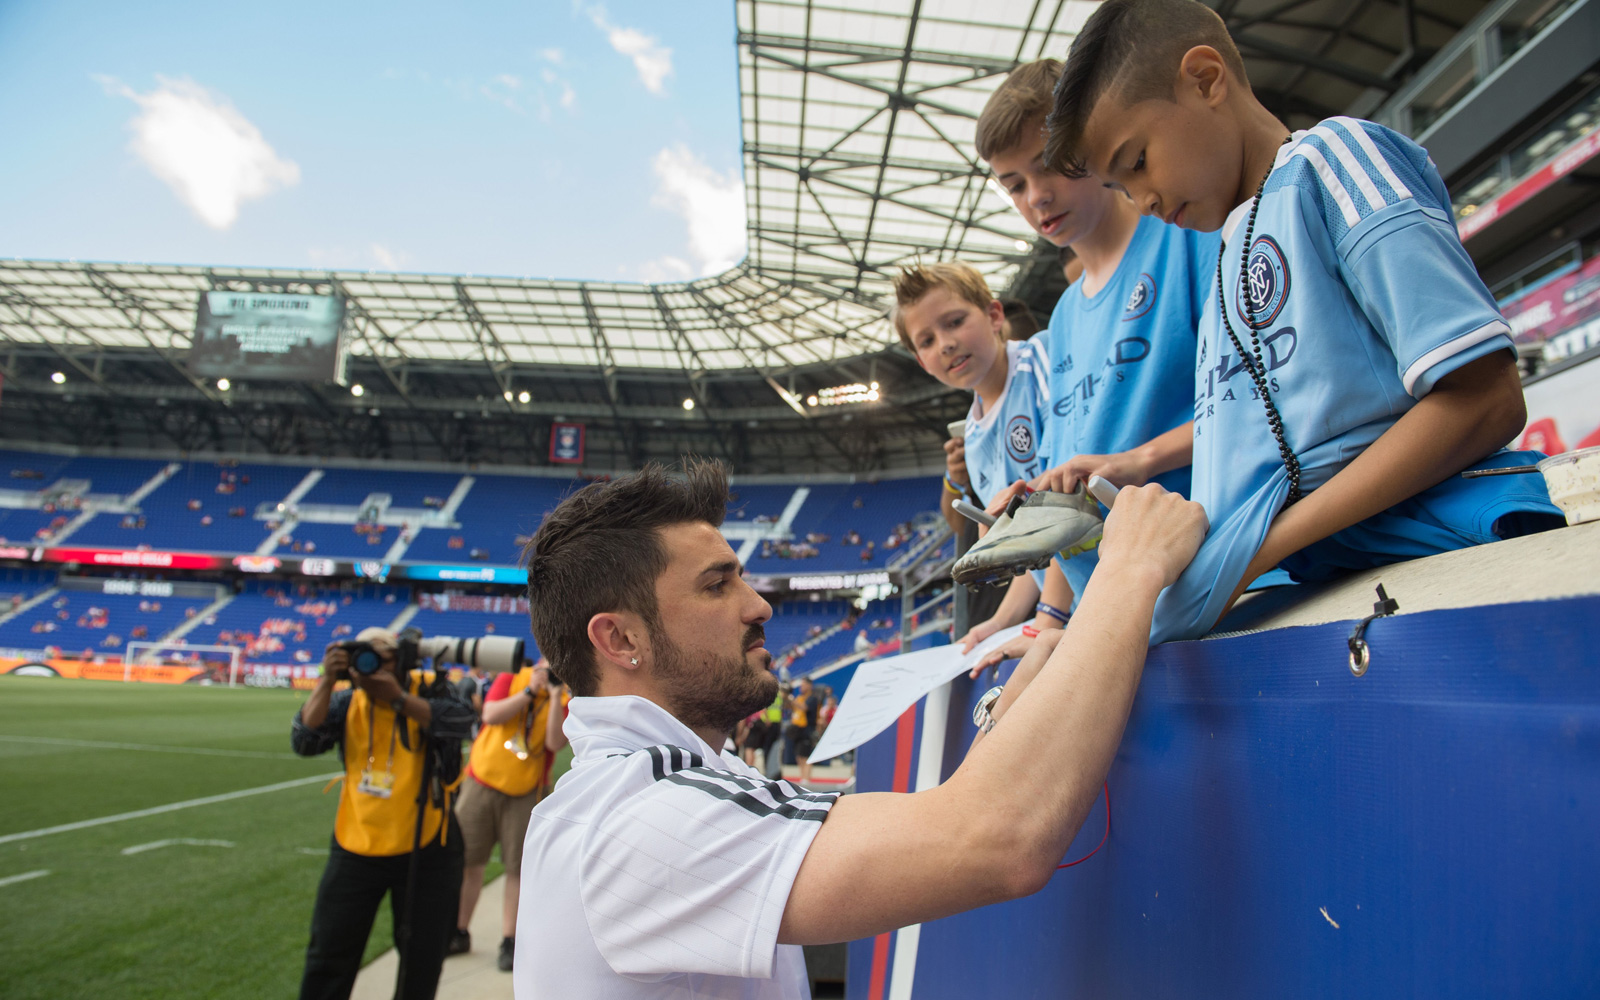 David Villa signs an autograph for a young NYCFC fan at Red Bull Arena in the club's first match against the New York Red Bulls.